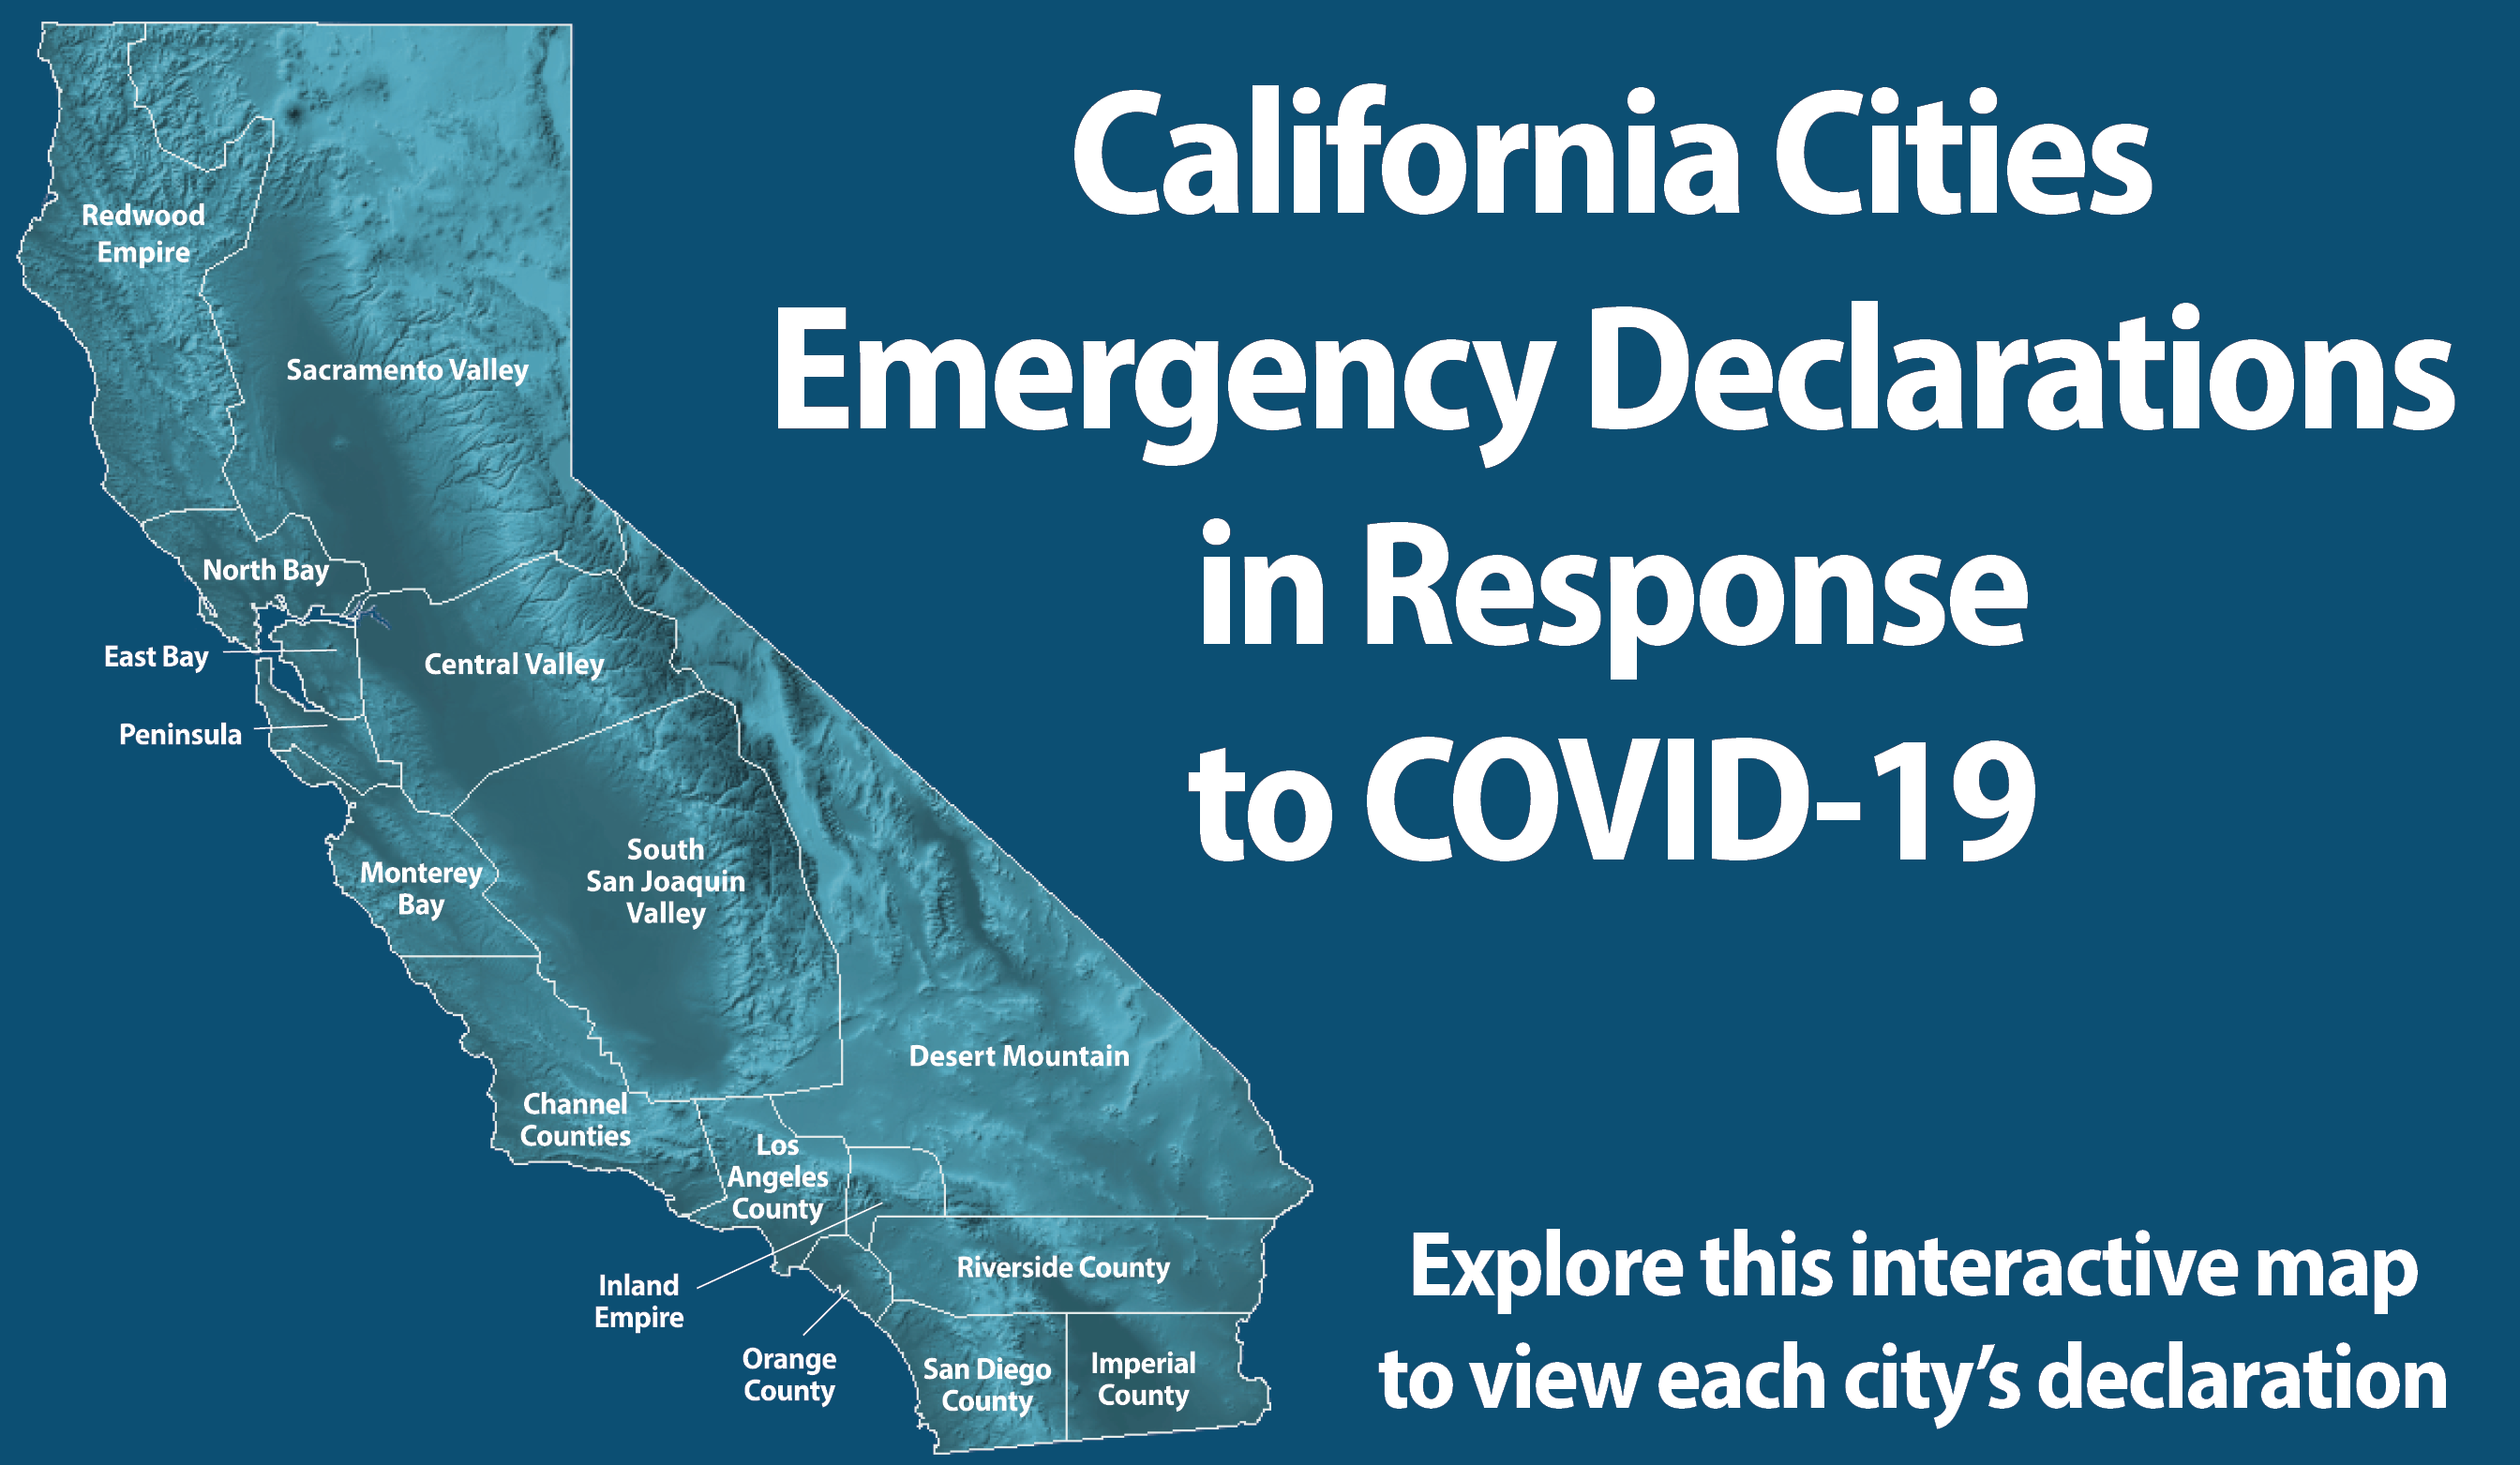 California Cities Emergency Declarations in response to COVID-19